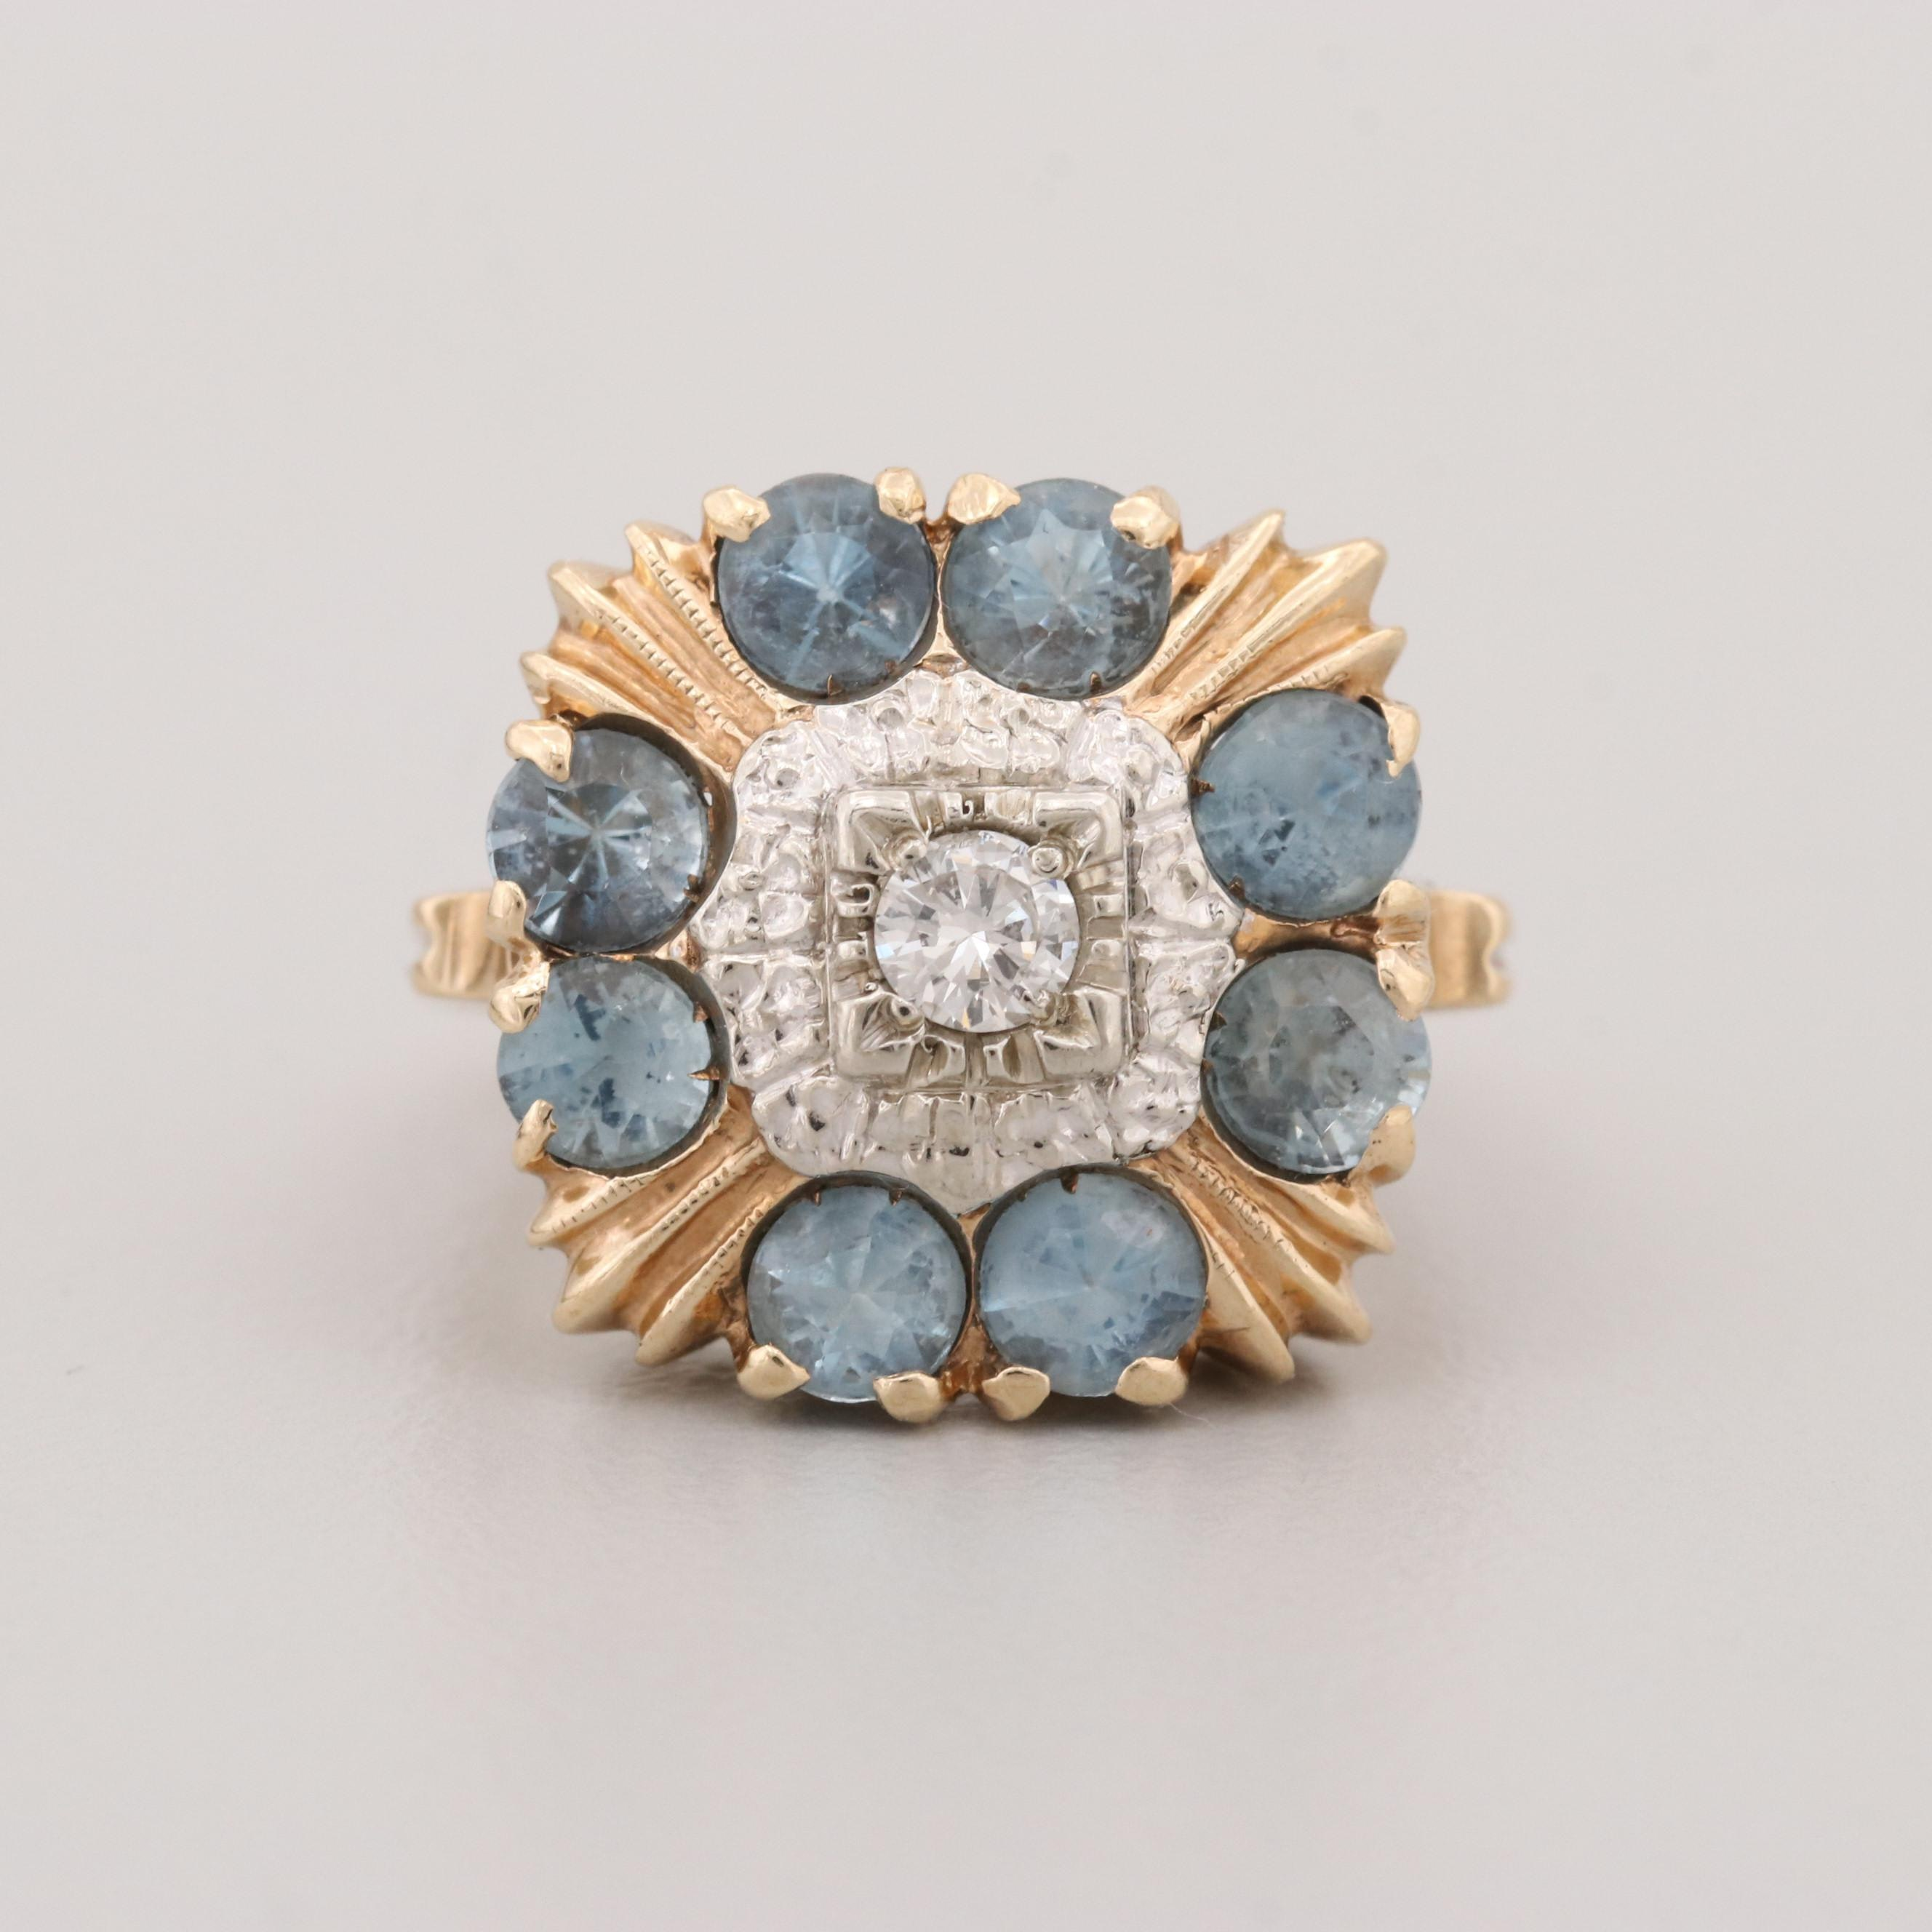 10K Yellow Gold Aquamarine and Diamond Ring with 14K White Gold Accents